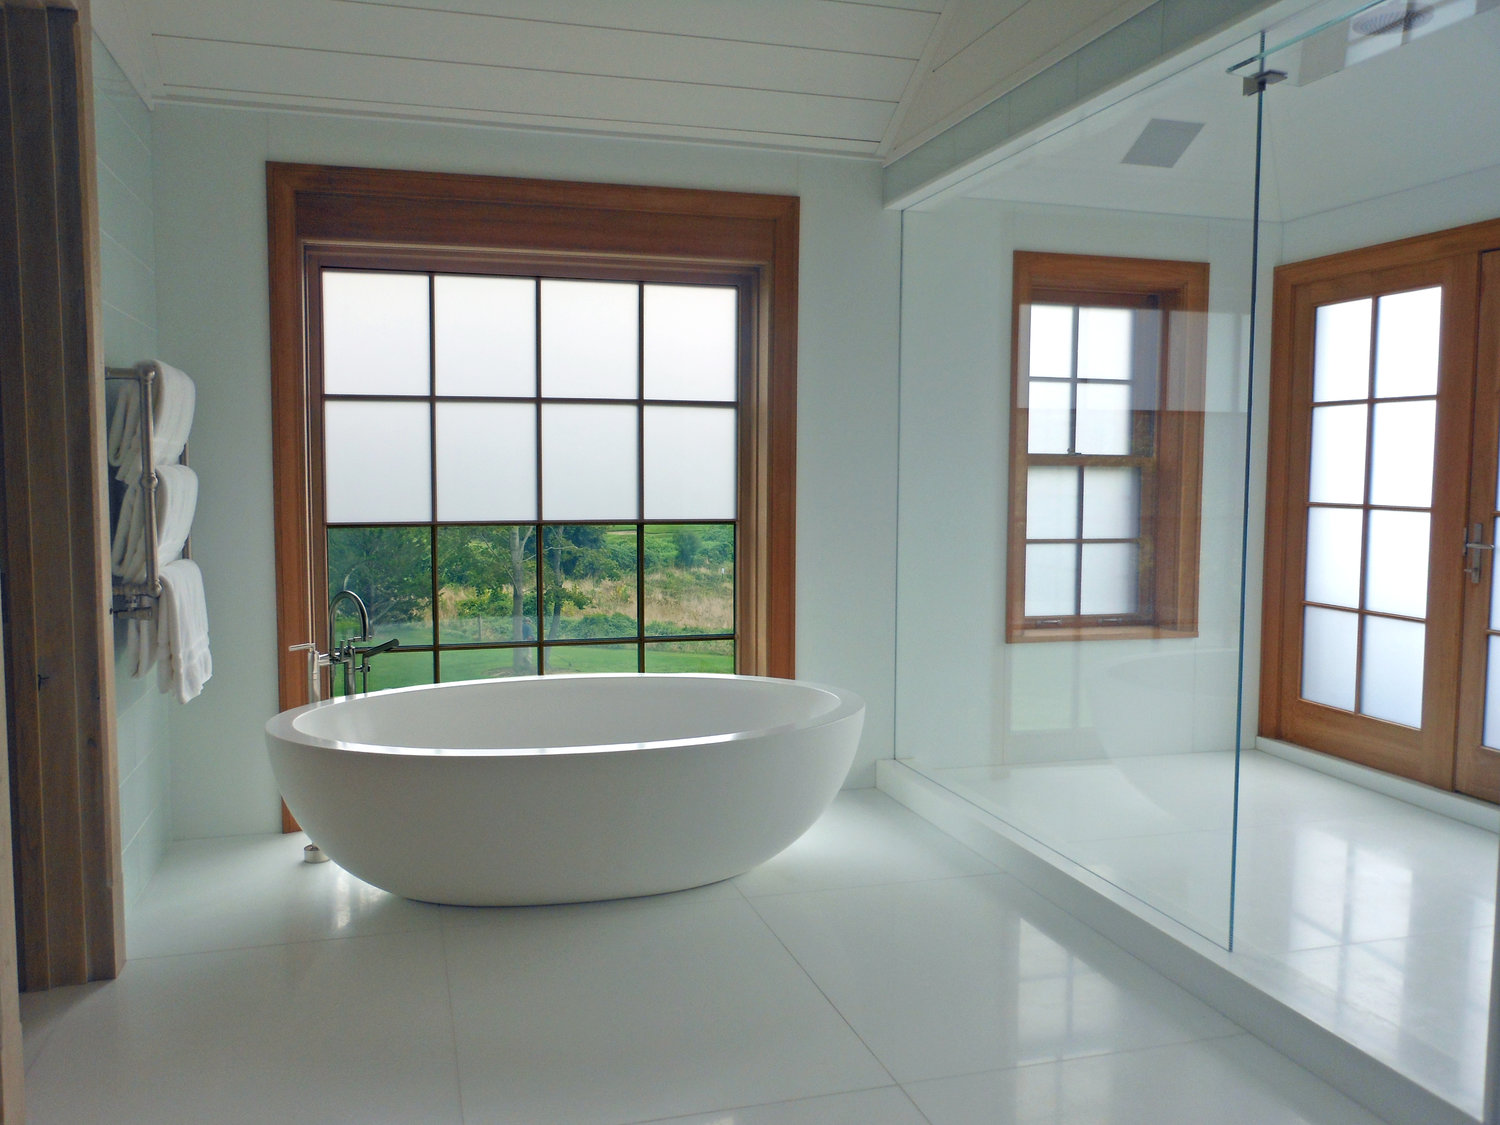 Cox tile decorating modern bathroom decor with window tint for cox tile dailygadgetfo Gallery